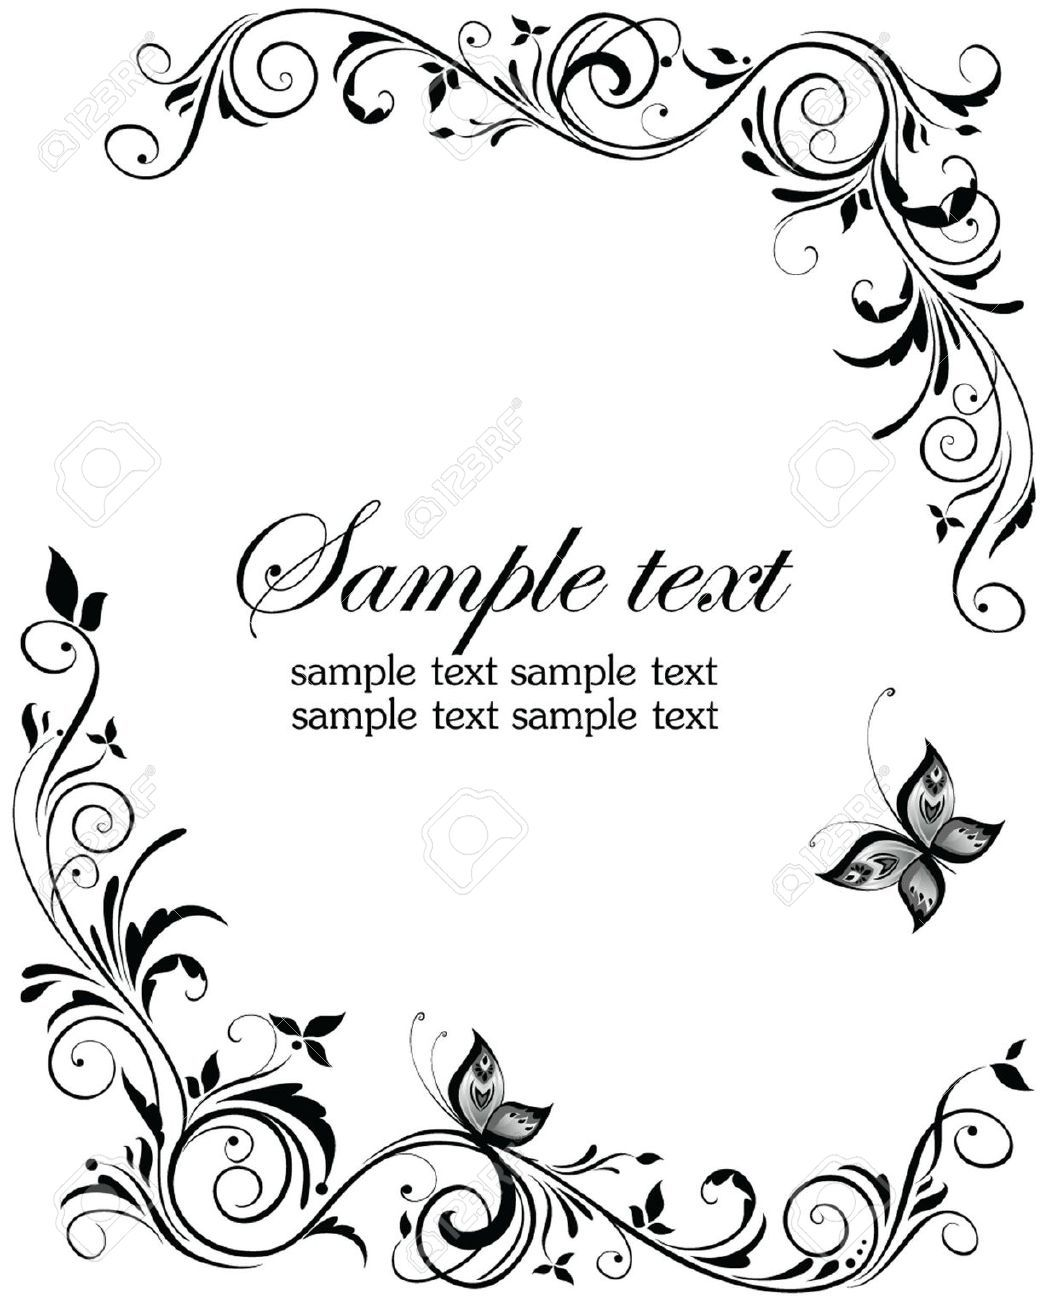 invitation border templates cloudinvitation, free border designs for ...